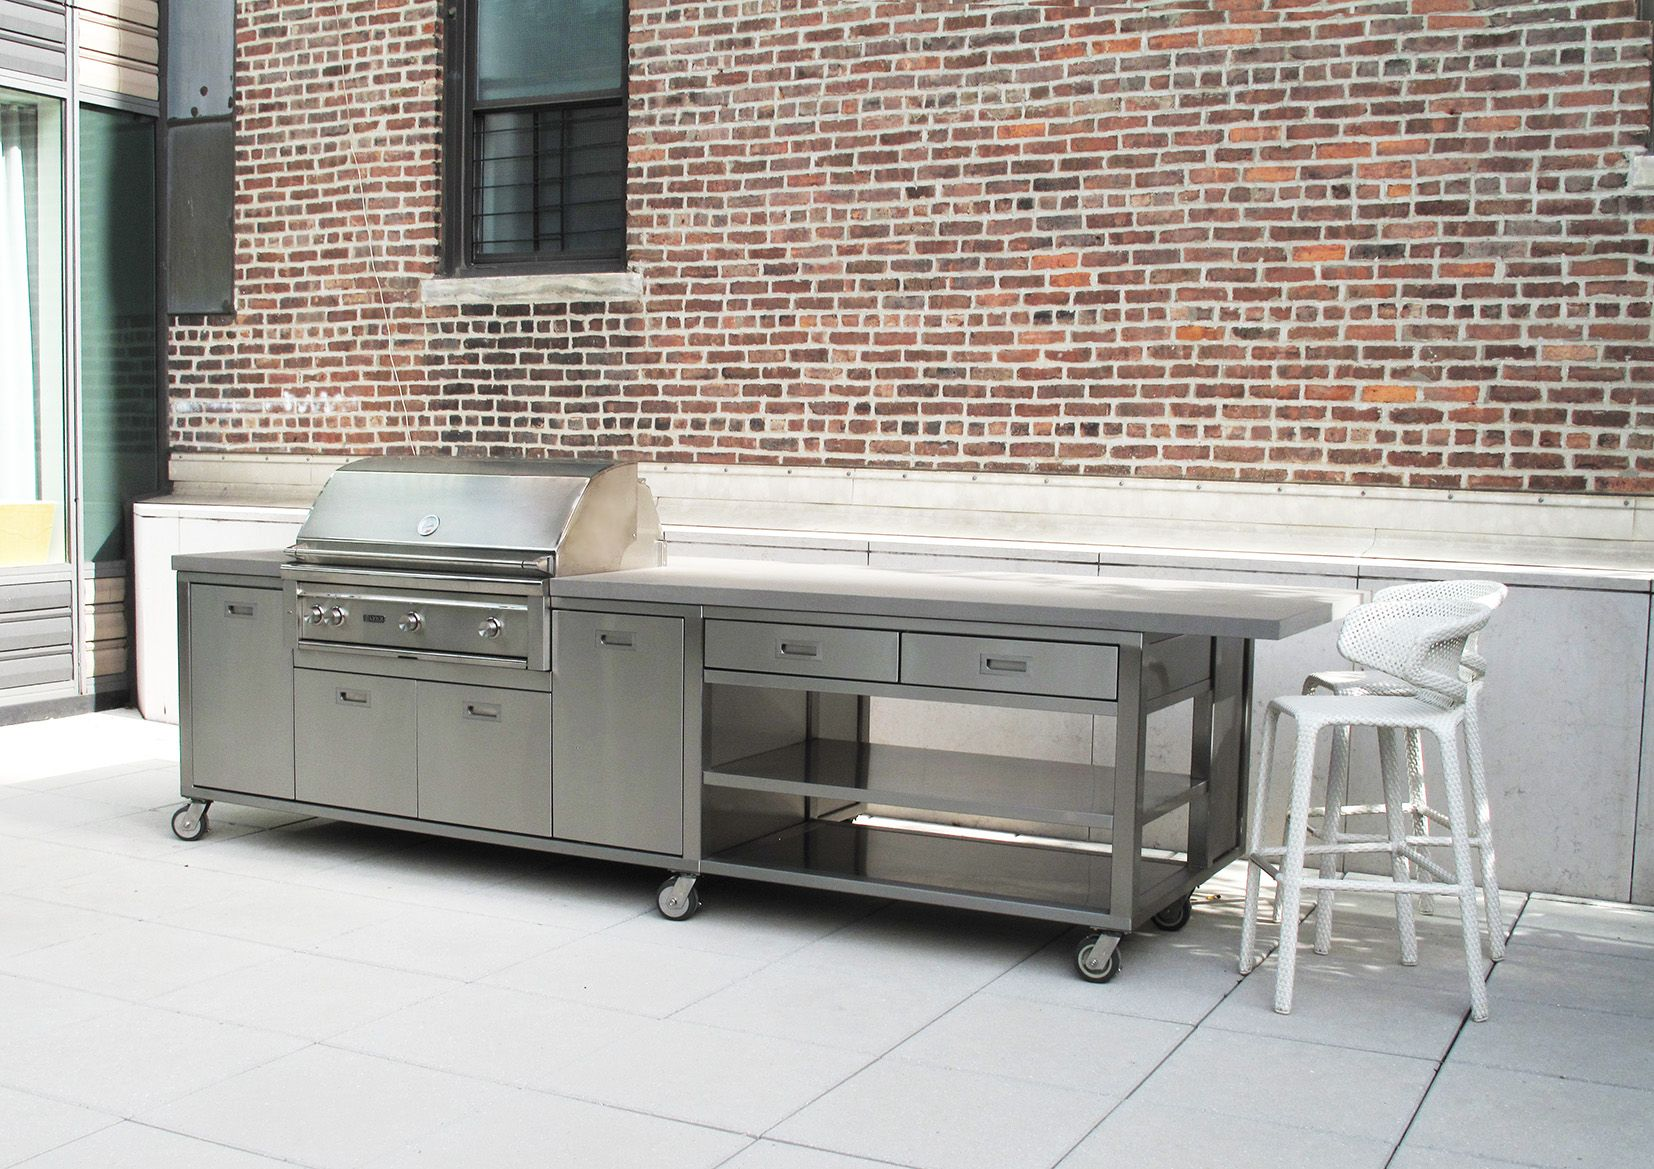 outdoor kitchen on wheels marine grade stainless steel and neolithe countertops perfect for on outdoor kitchen on wheels id=64215